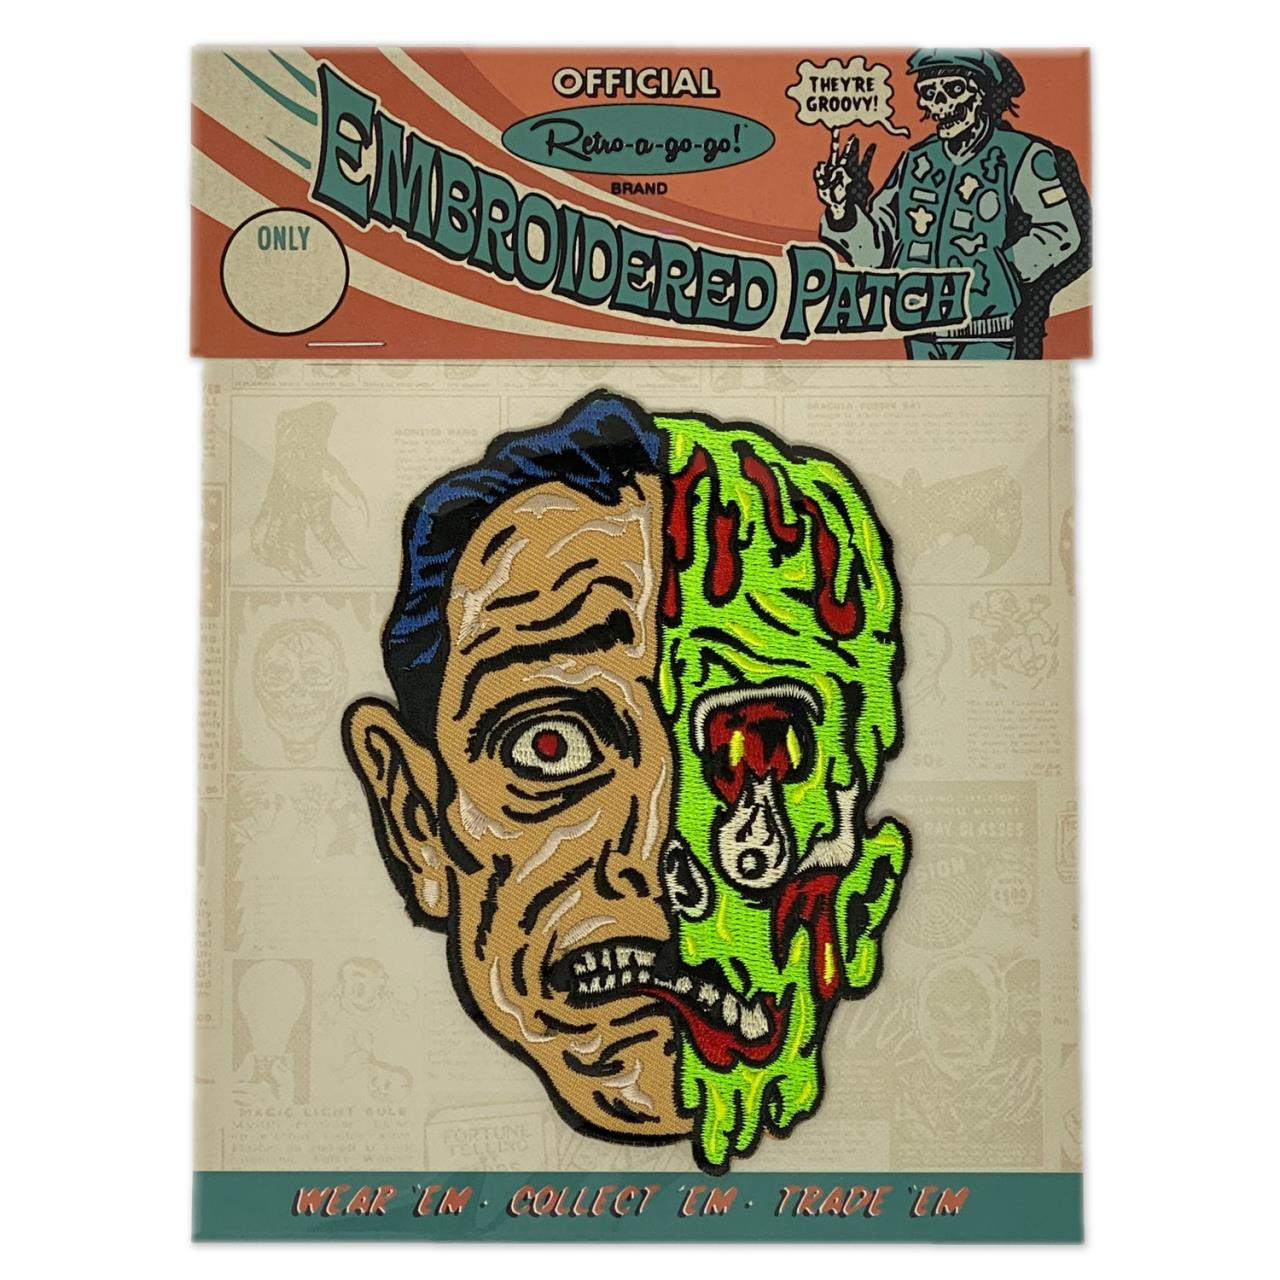 Melted Man Patch - 0659682806624